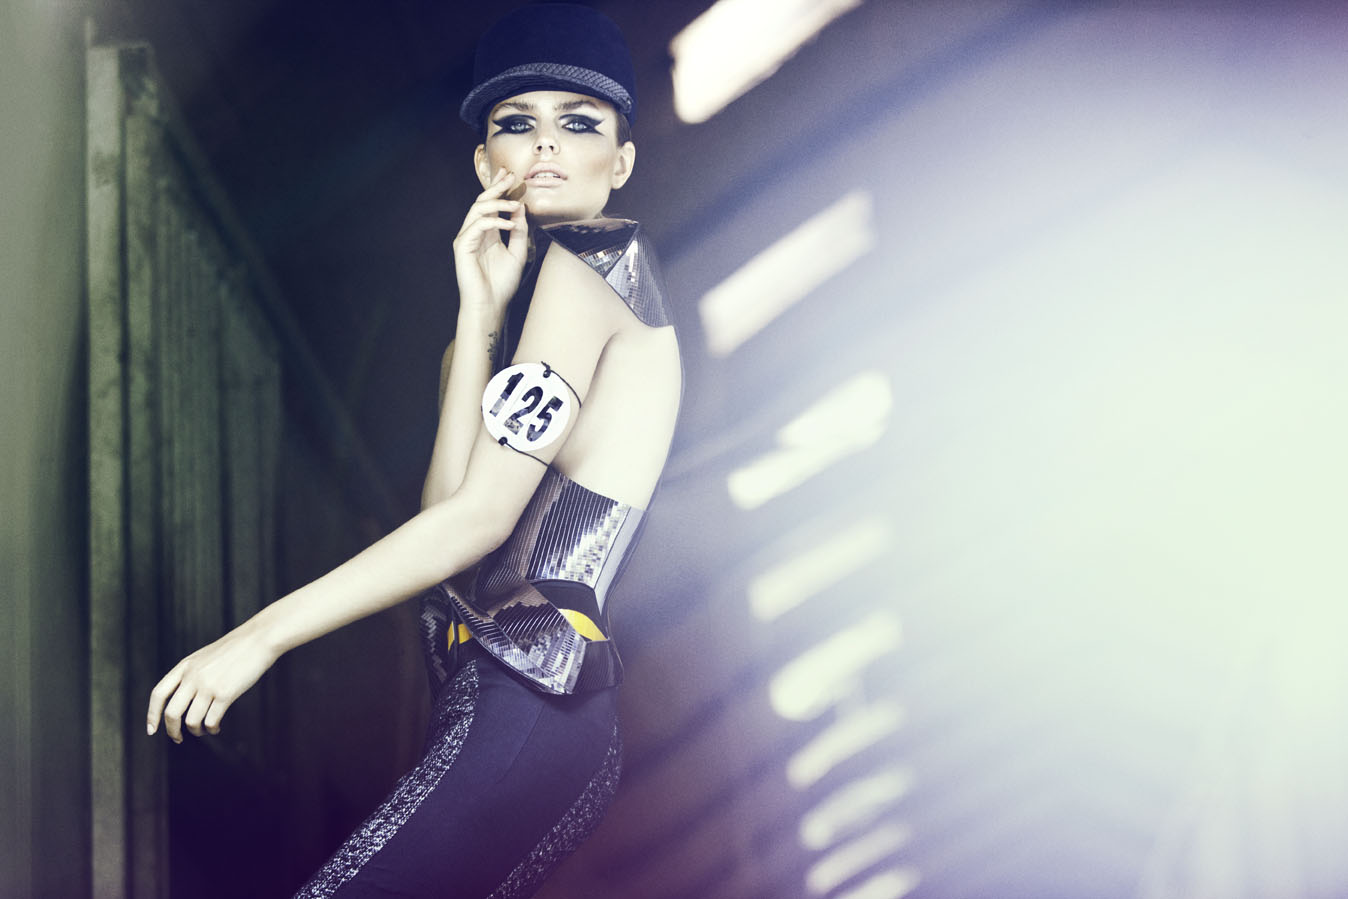 www.lacavalieremasquee.com   Signe Vilstrup for Tush Magazine w/ Dimphy Janse: Ready to Ride